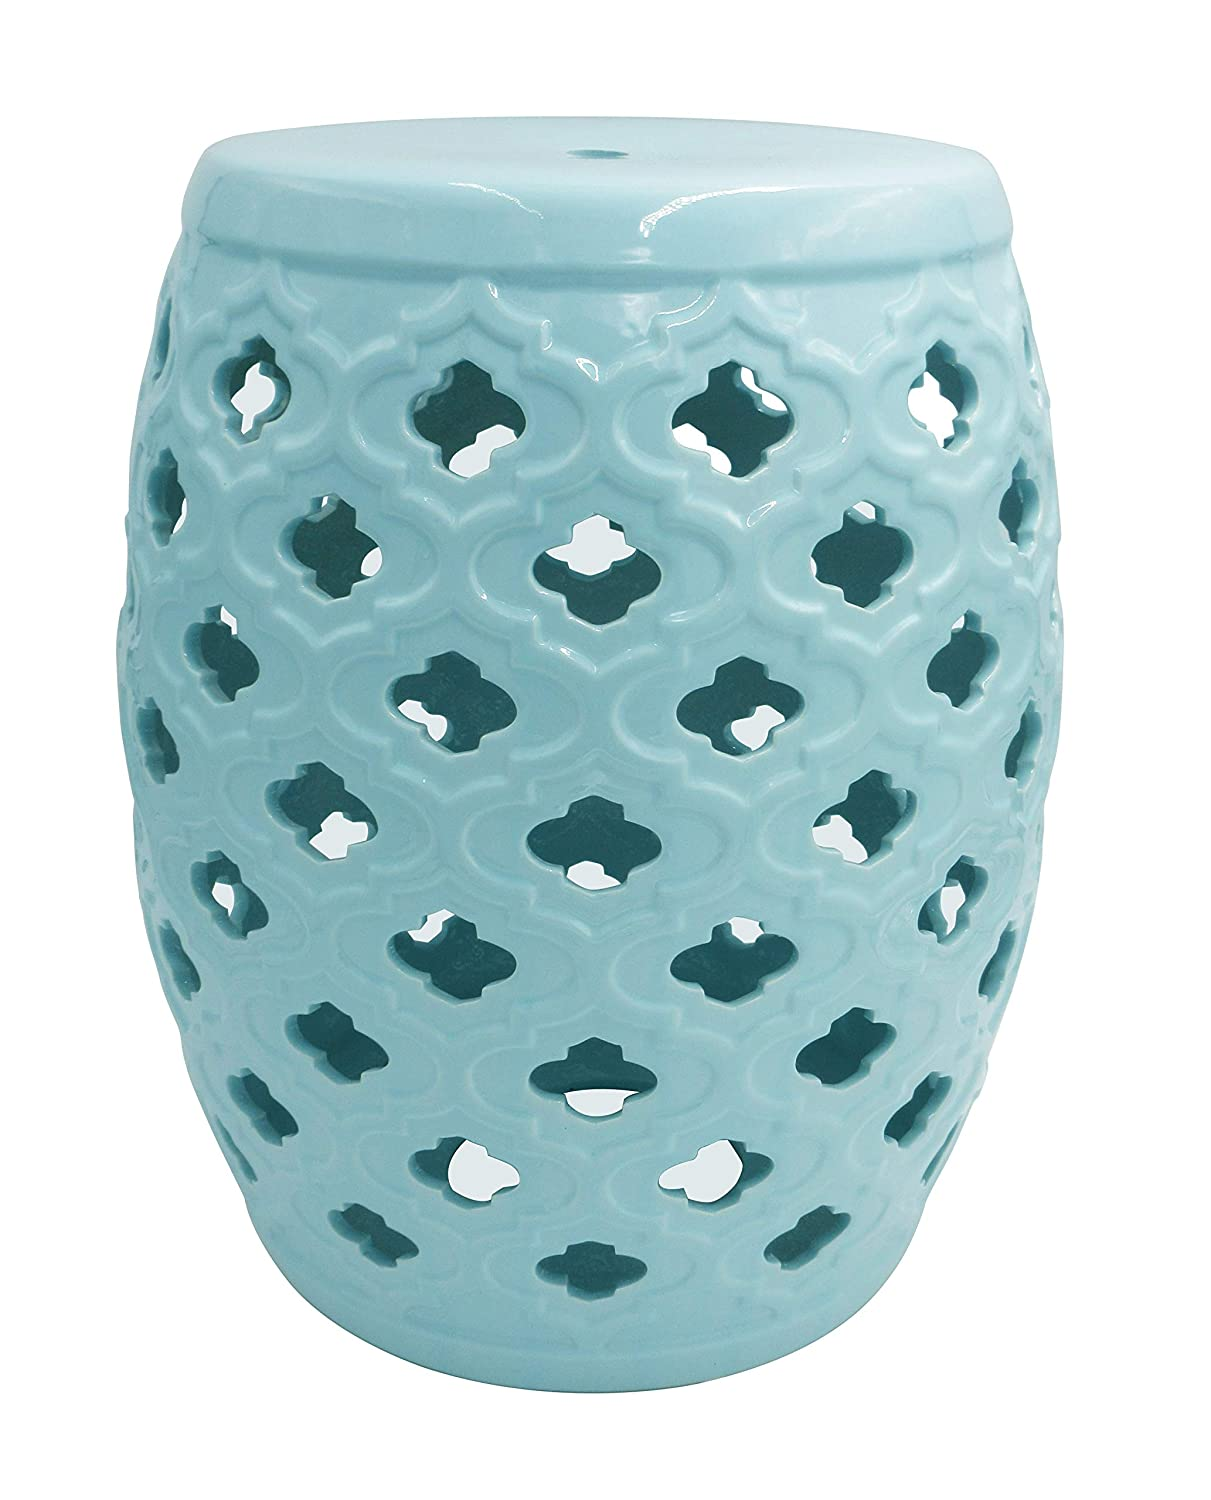 Ravenna Home Moroccan-Pattern Ceramic Garden Stool or Side Table, 16 H, Light Blue